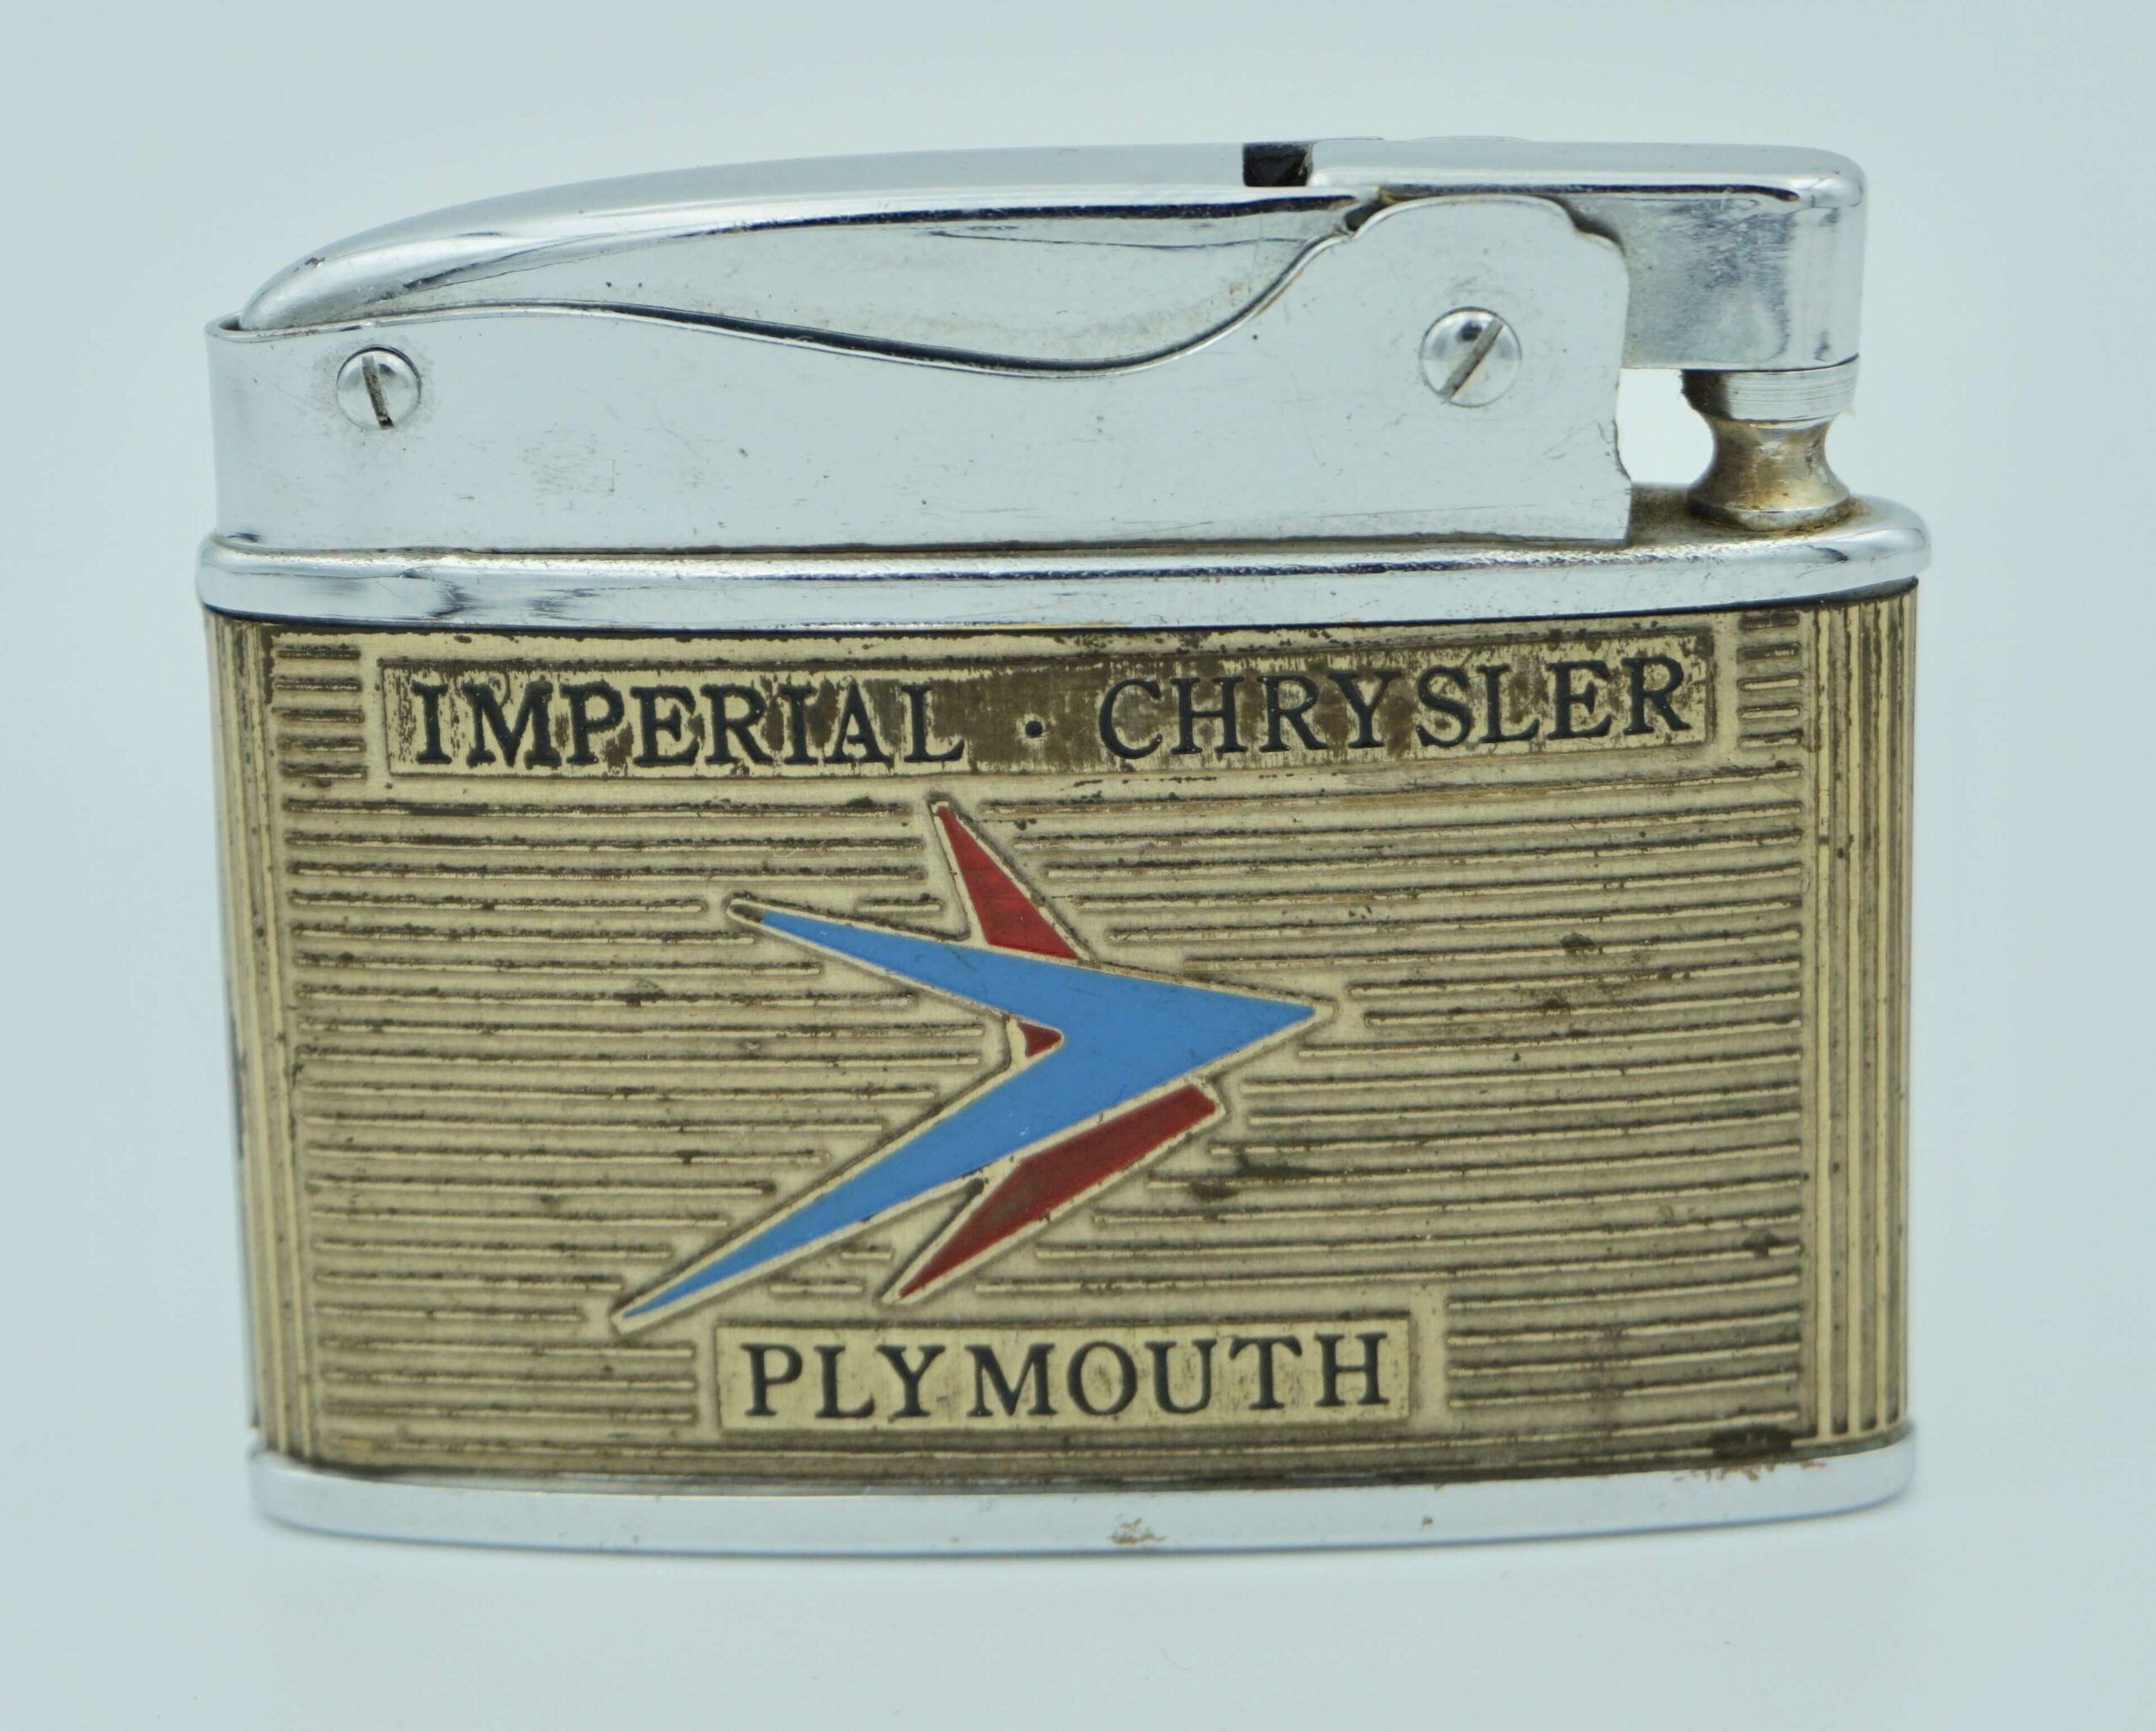 Imperial - Chrysler - Plymouth